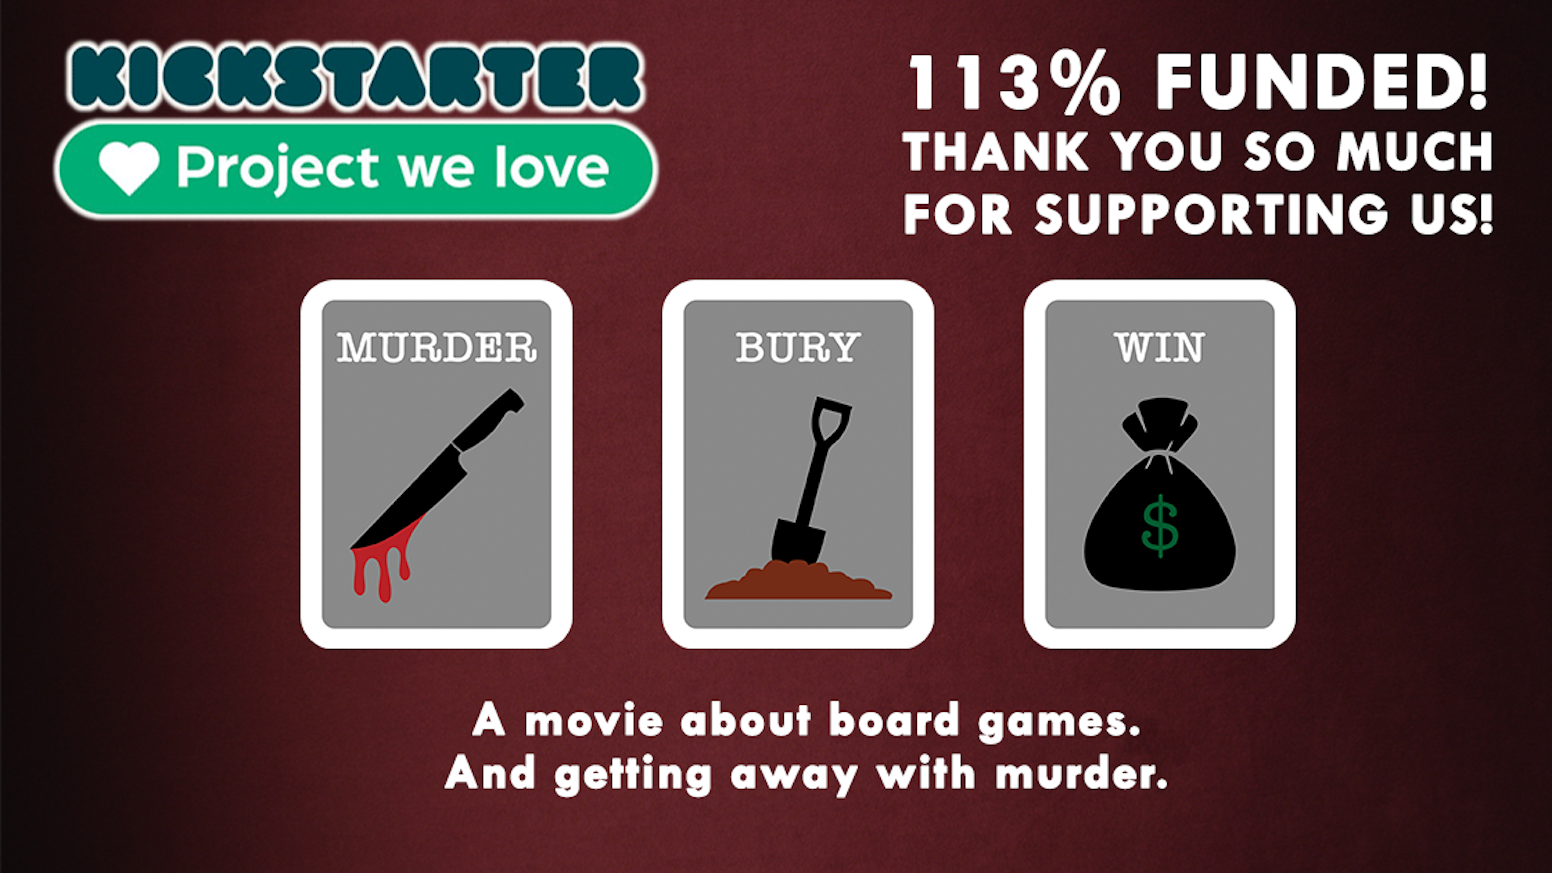 Watch the trailer, then help us fund post on this dark comedic thriller about board games.